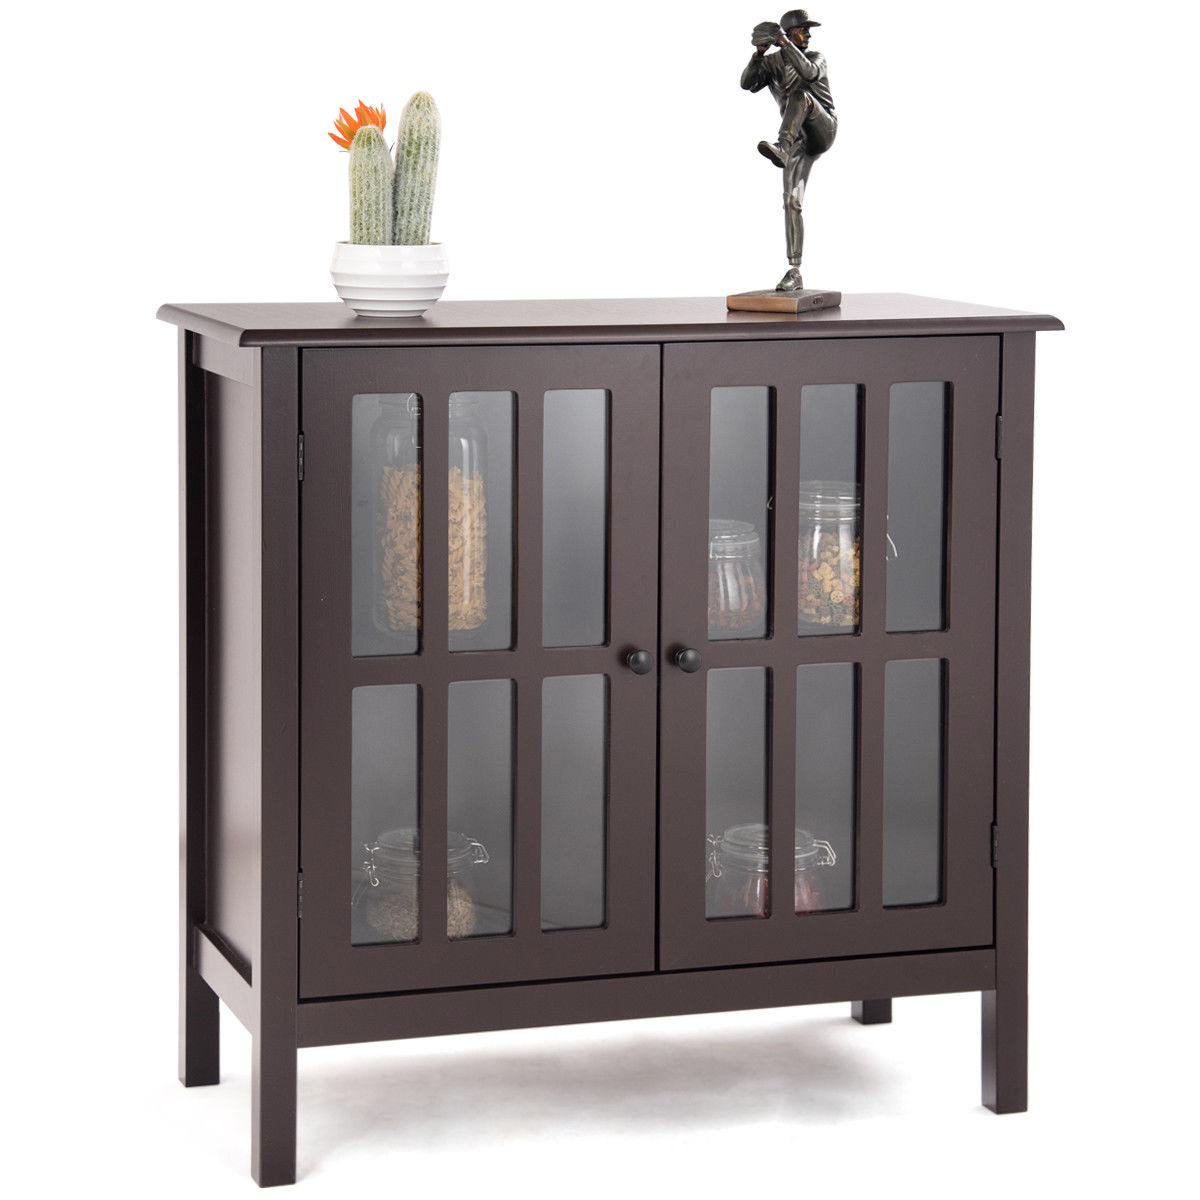 Costway Storage Buffet Cabinet Glass Door Sideboard Console Table Server Display Brown by Costway